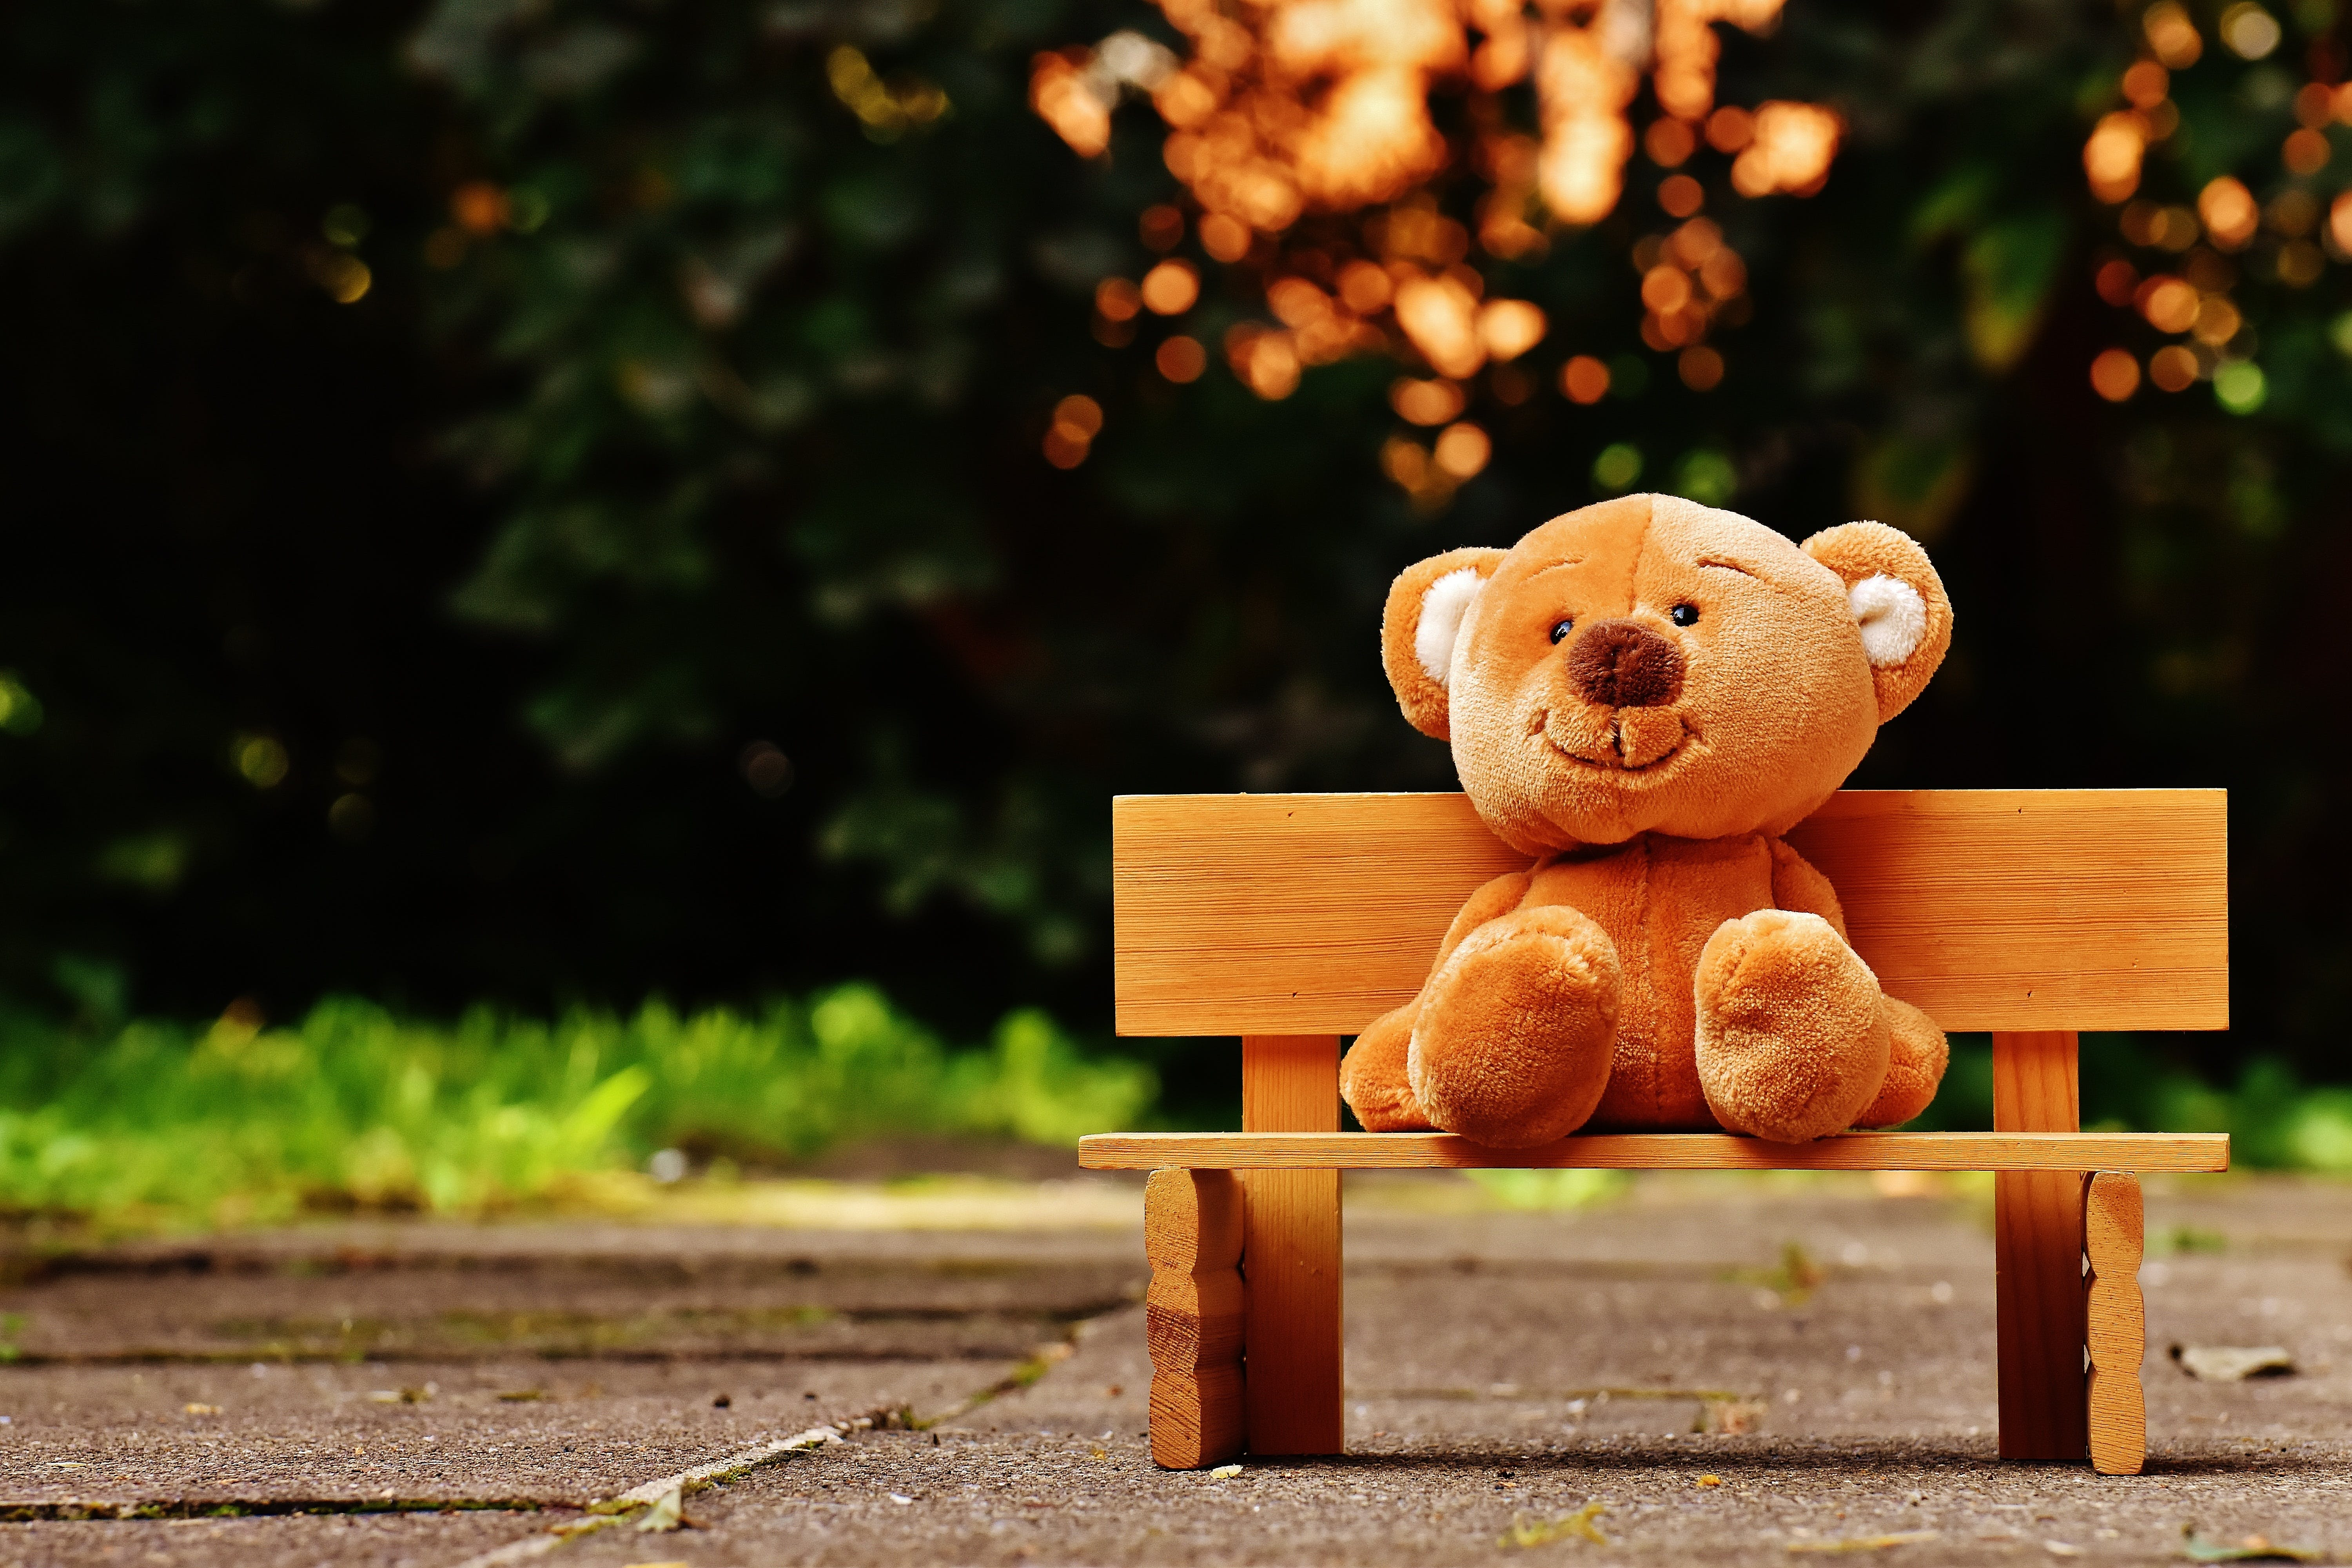 Brown Teddy Bear on Brown Wooden Bench Outside